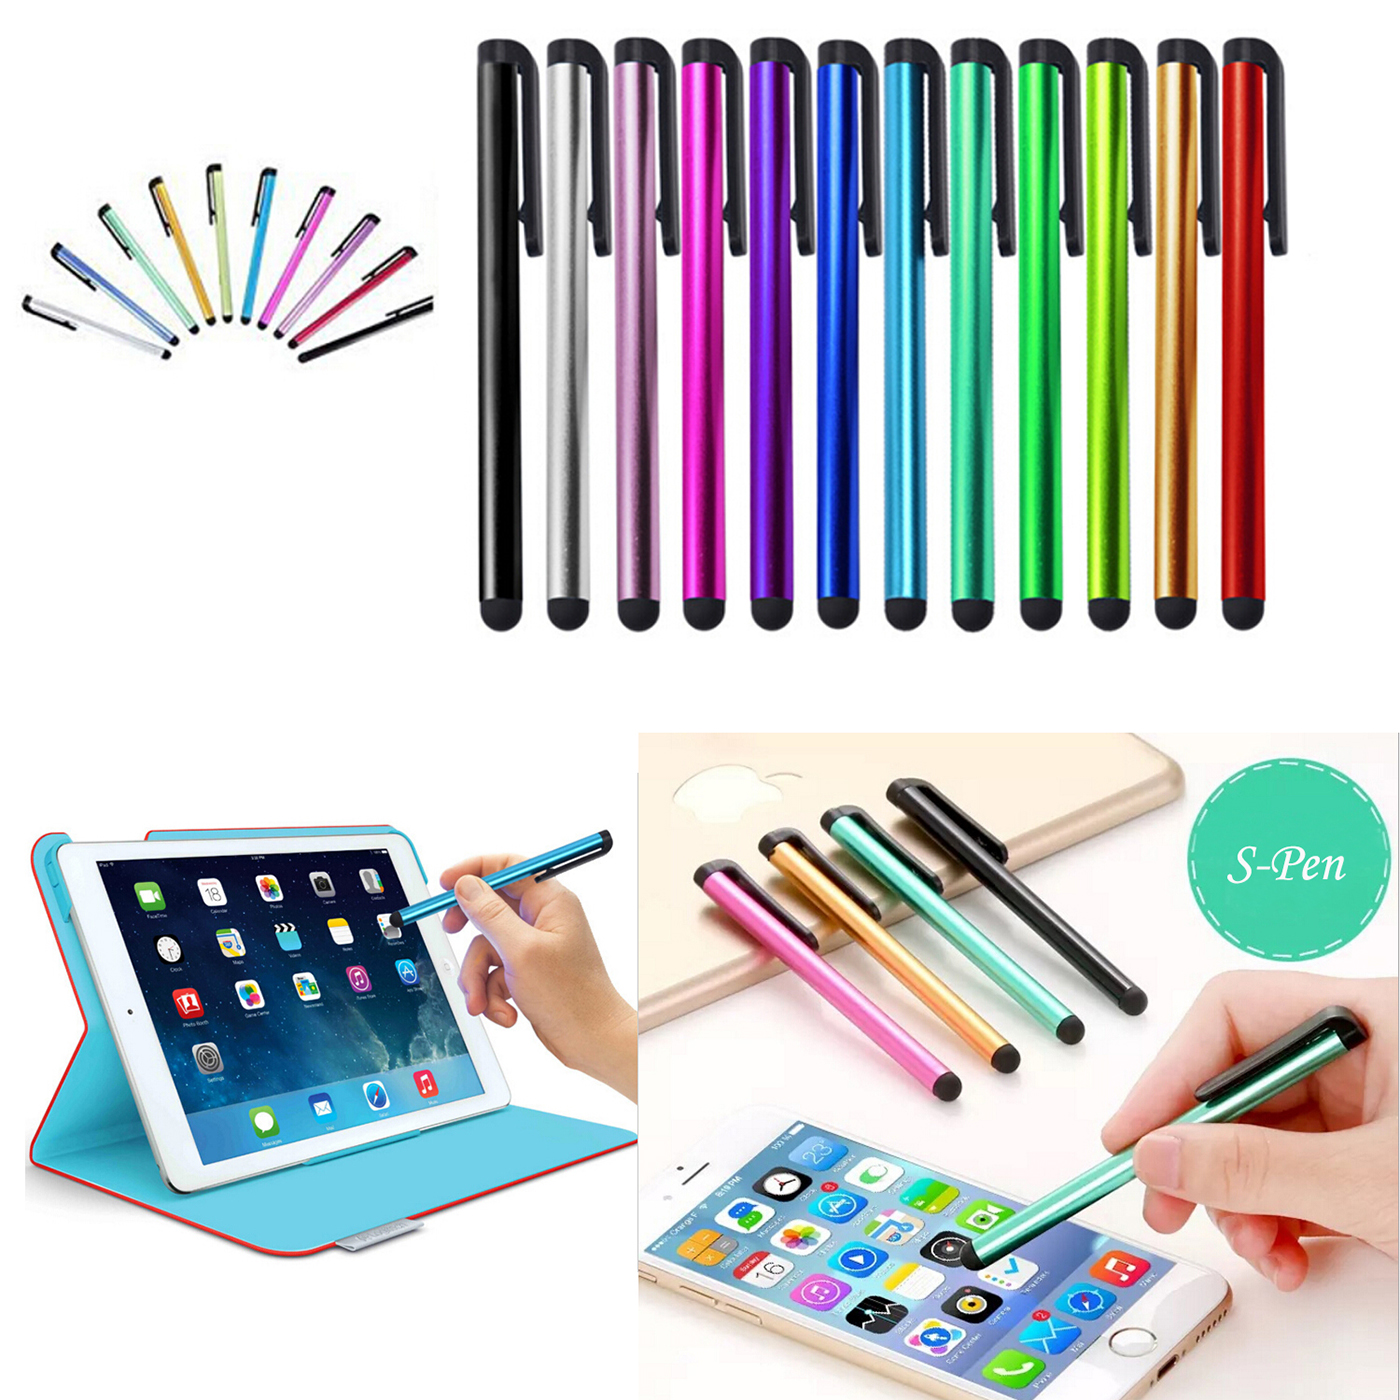 10pcs Touch Pen Touch Screen Stylus Tablet PC Smart Phone Capacitor Stylus Pens